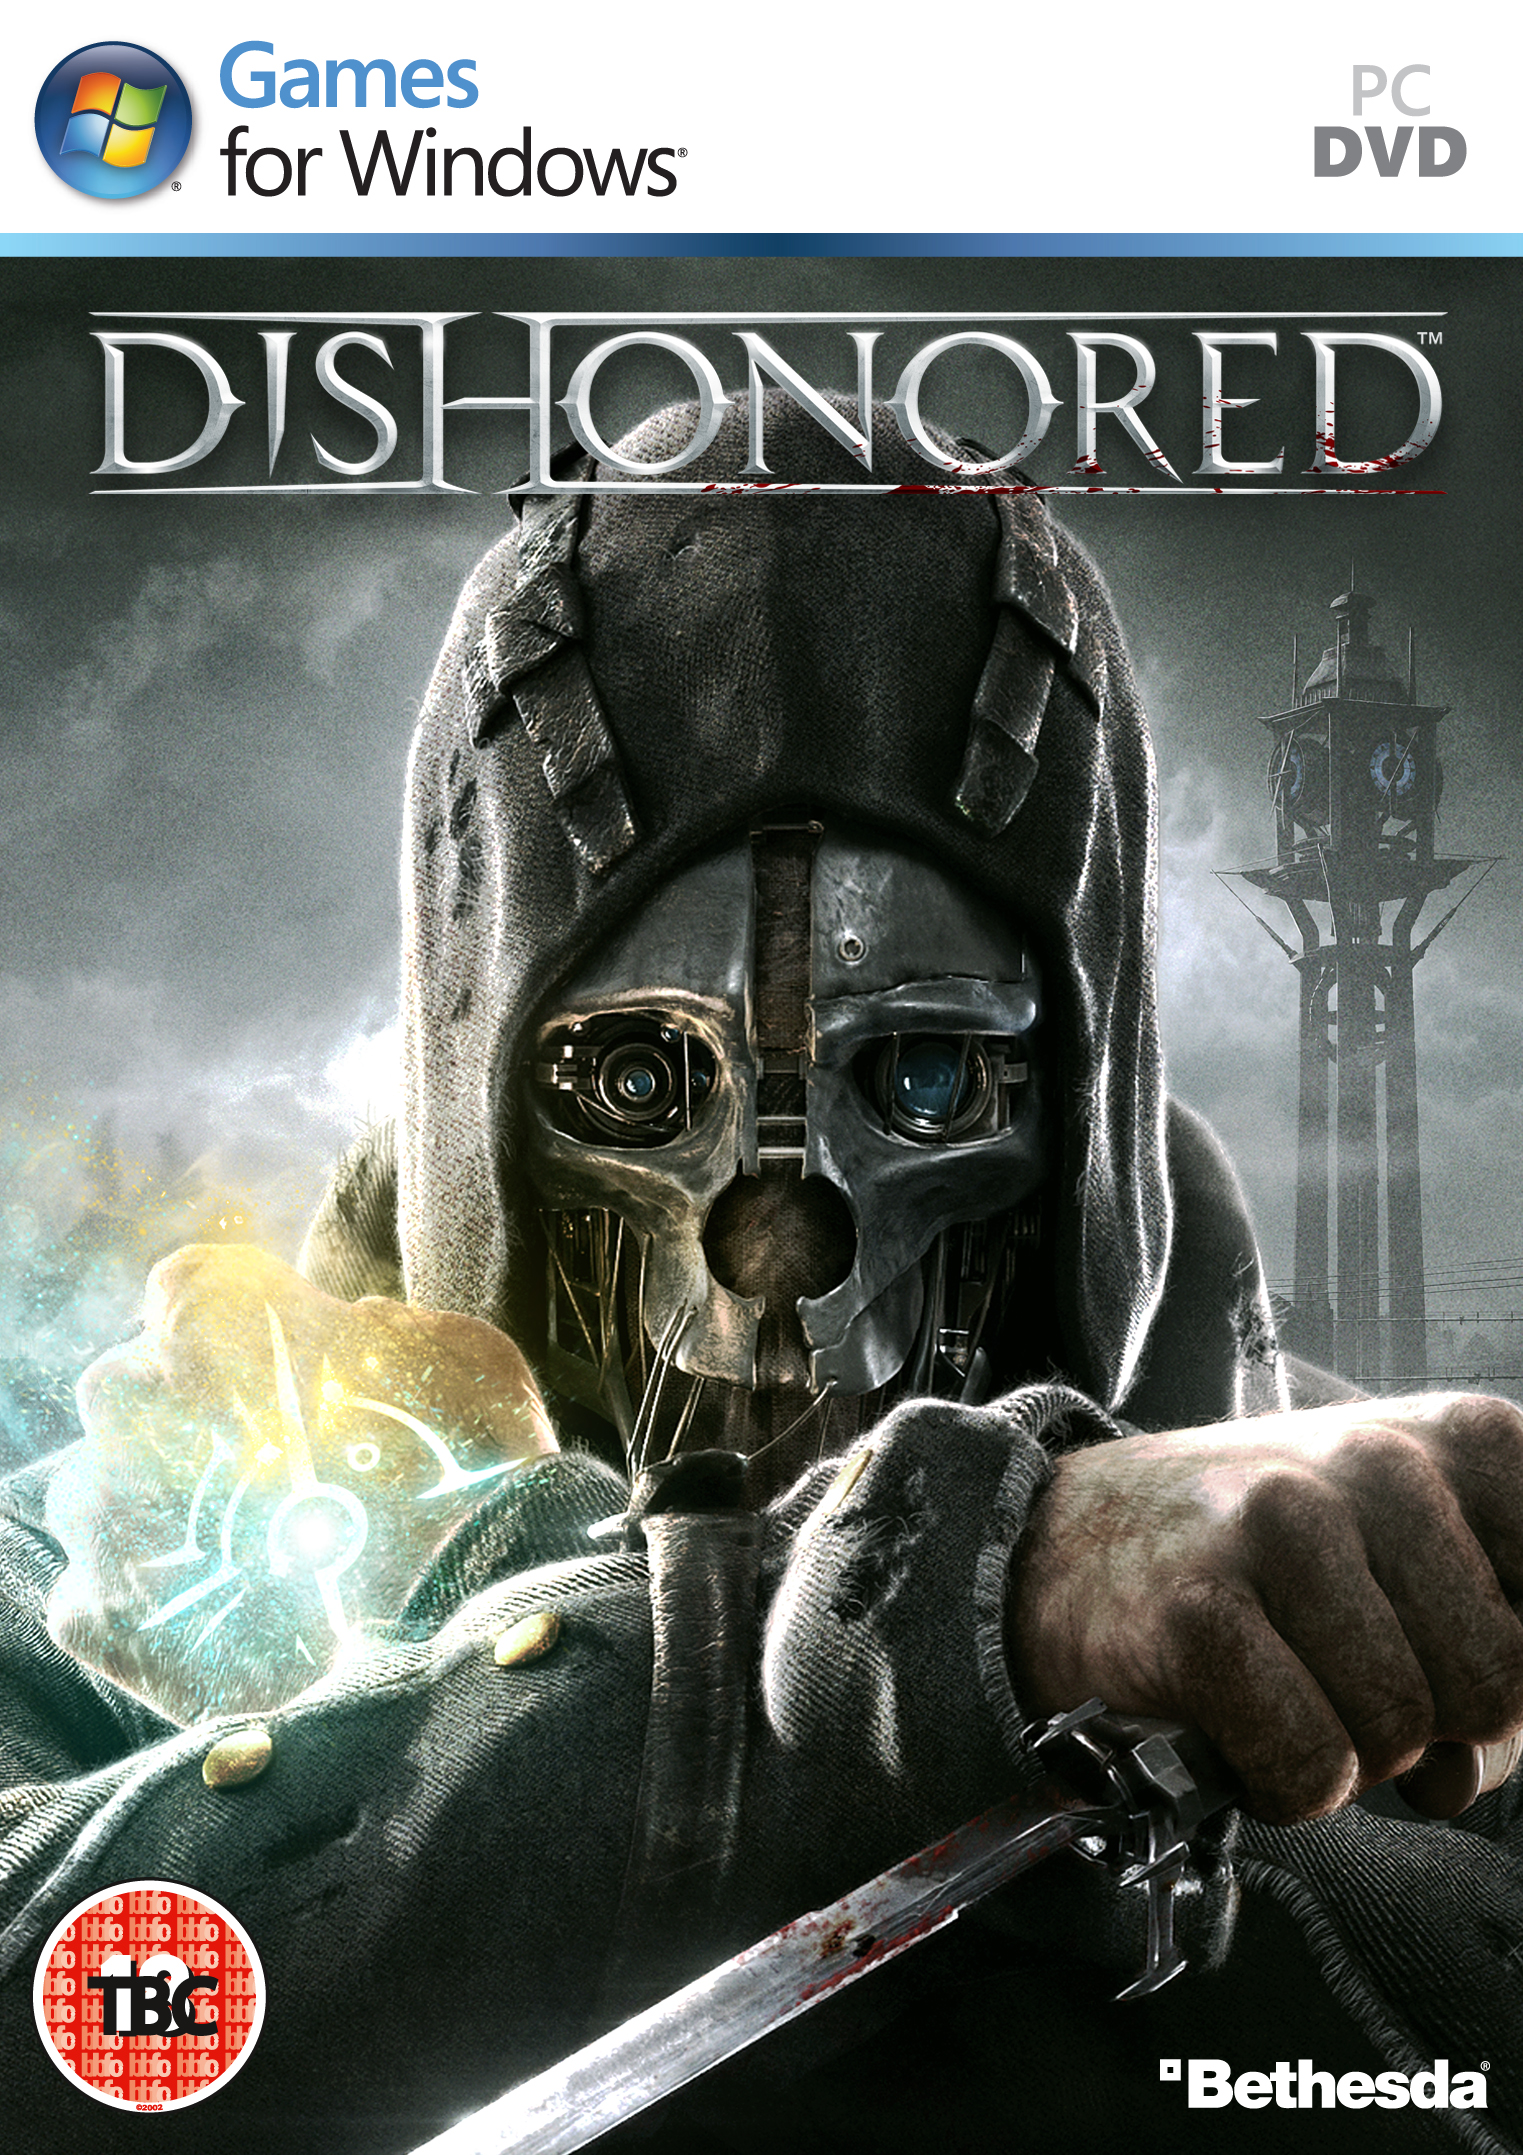 http://images1.wikia.nocookie.net/__cb20120814181317/dishonoredvideogame/images/e/e9/Dishonored-pc.jpg